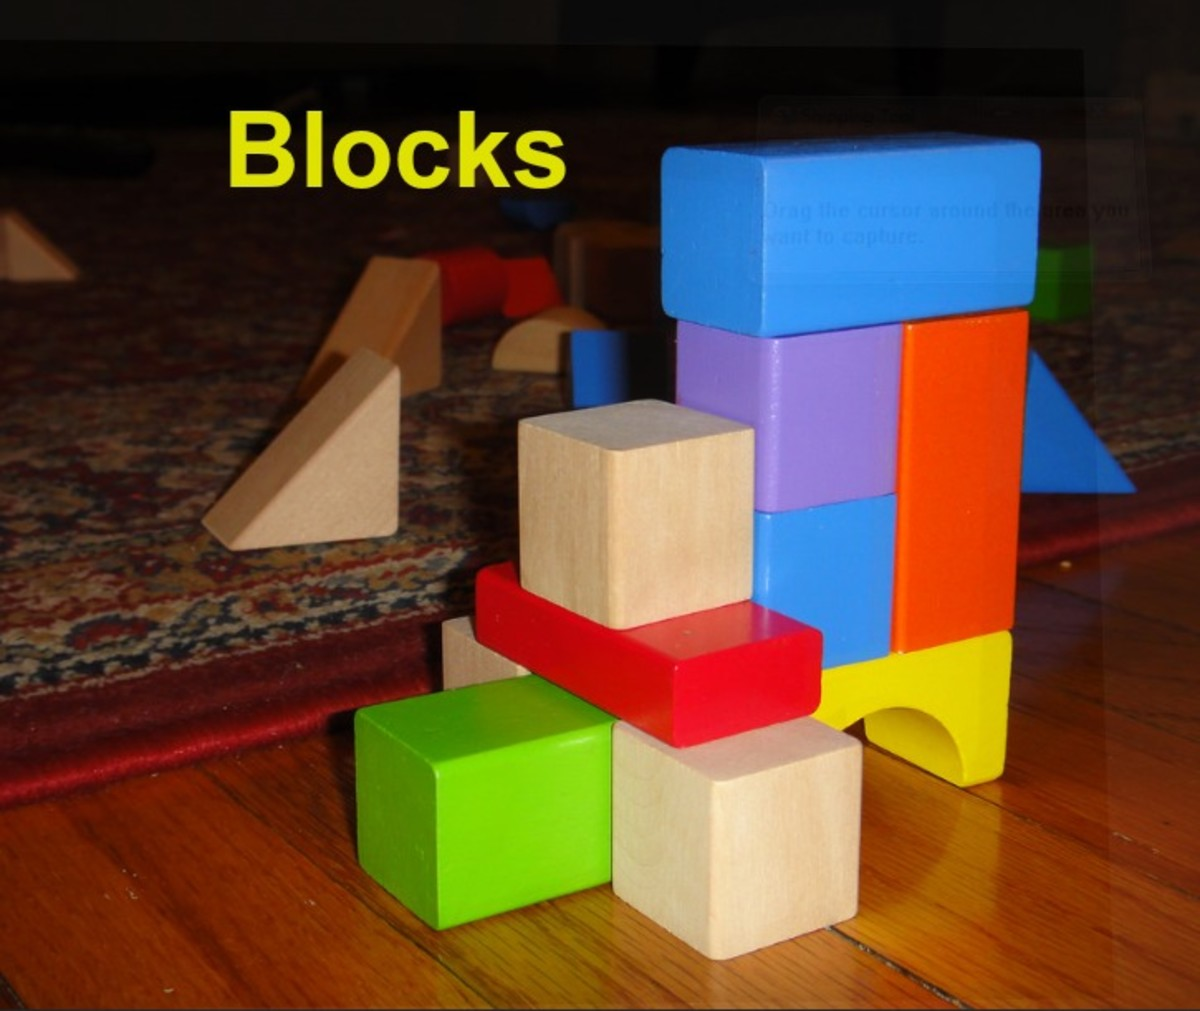 A quality set of wooden blocks is a smart investment and will provide hours of creative fun for children.